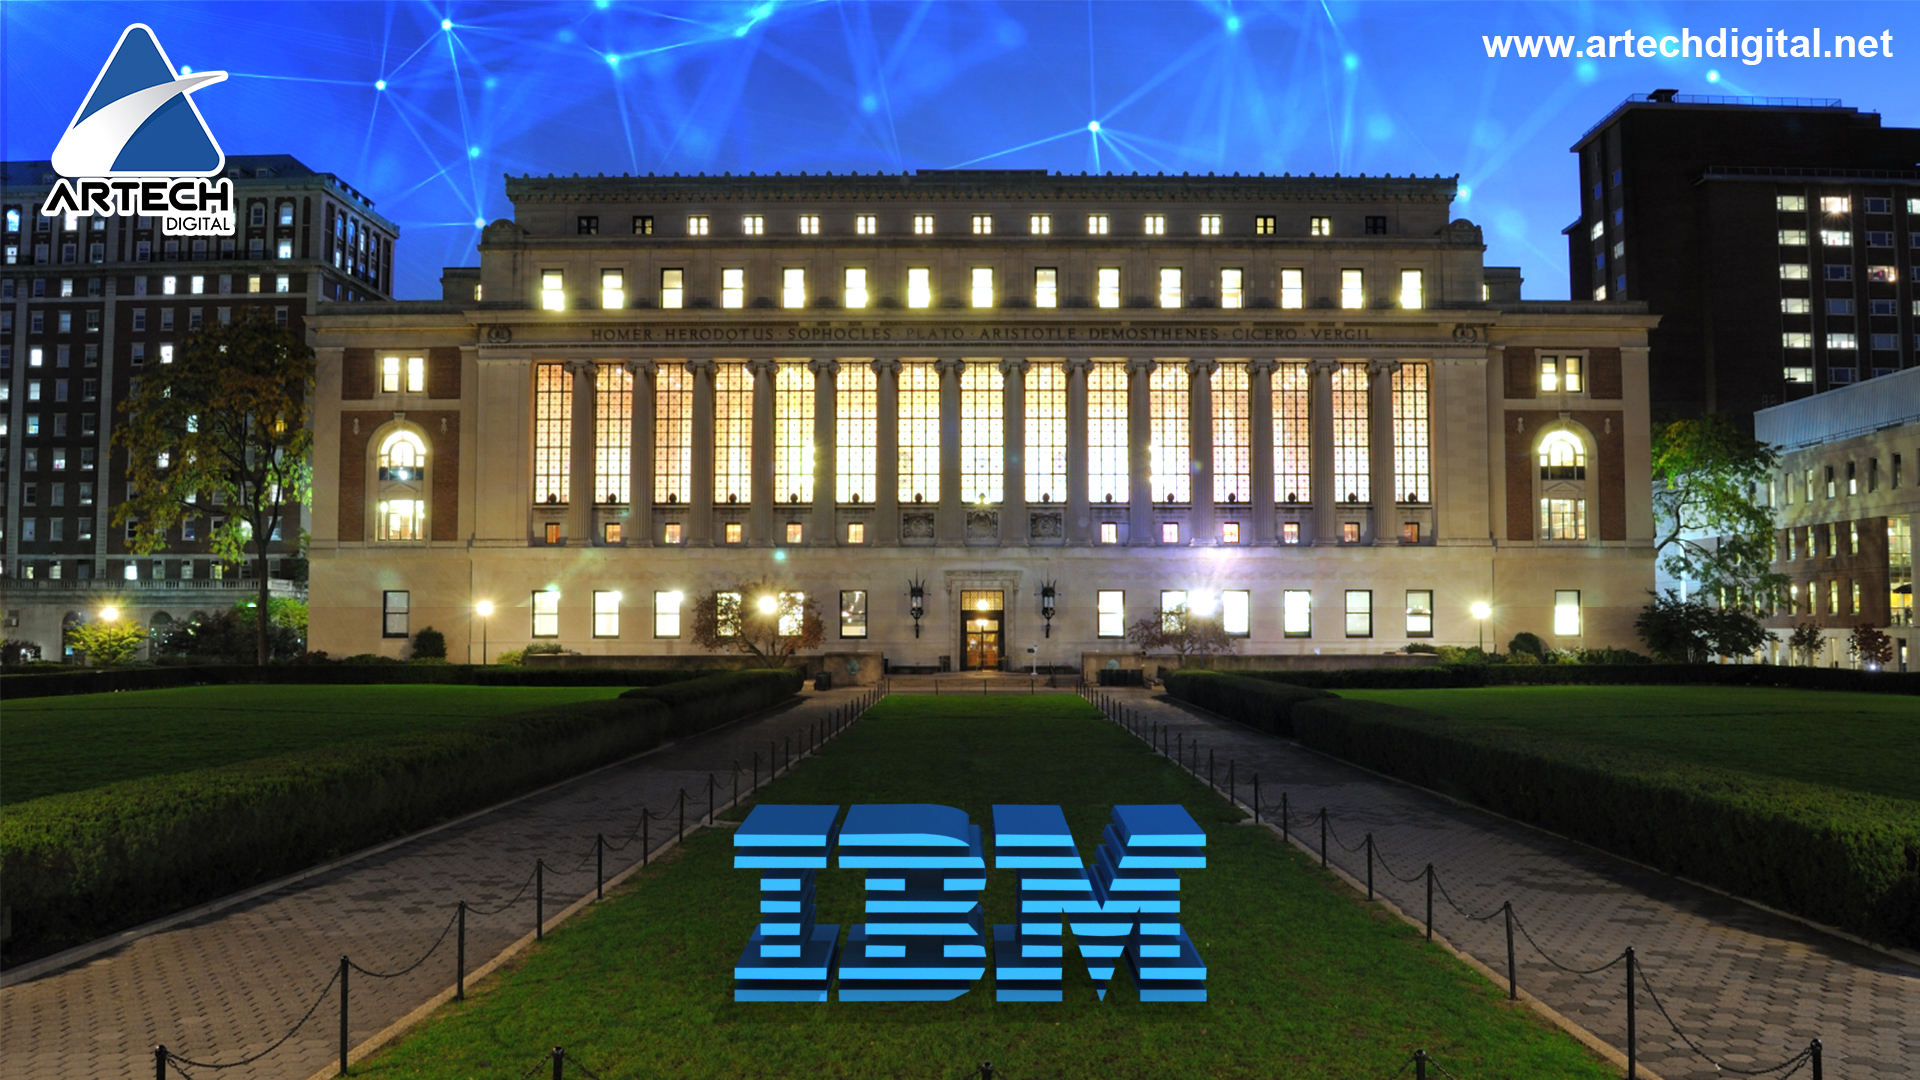 Universidad de Columbia - IBM - Artech Digital